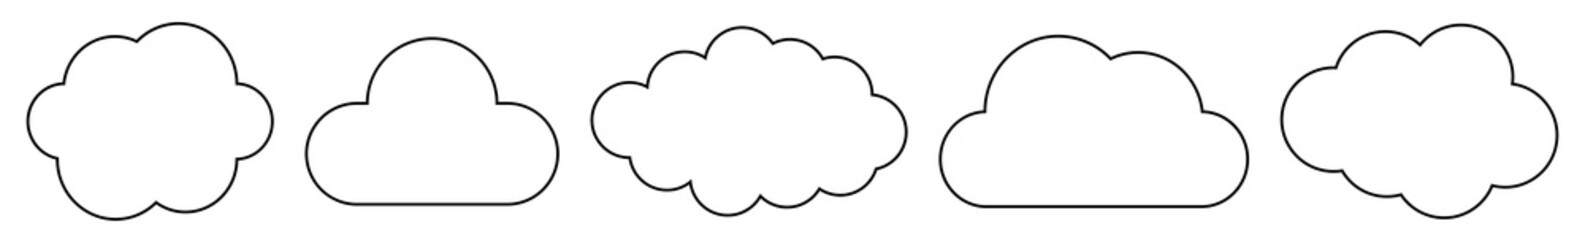 Cloud Icon Black Line | Clouds Illustration | Weather Climate Symbol | Computing Storage Logo | Cartoon Bubble Sign | Isolated | Variations